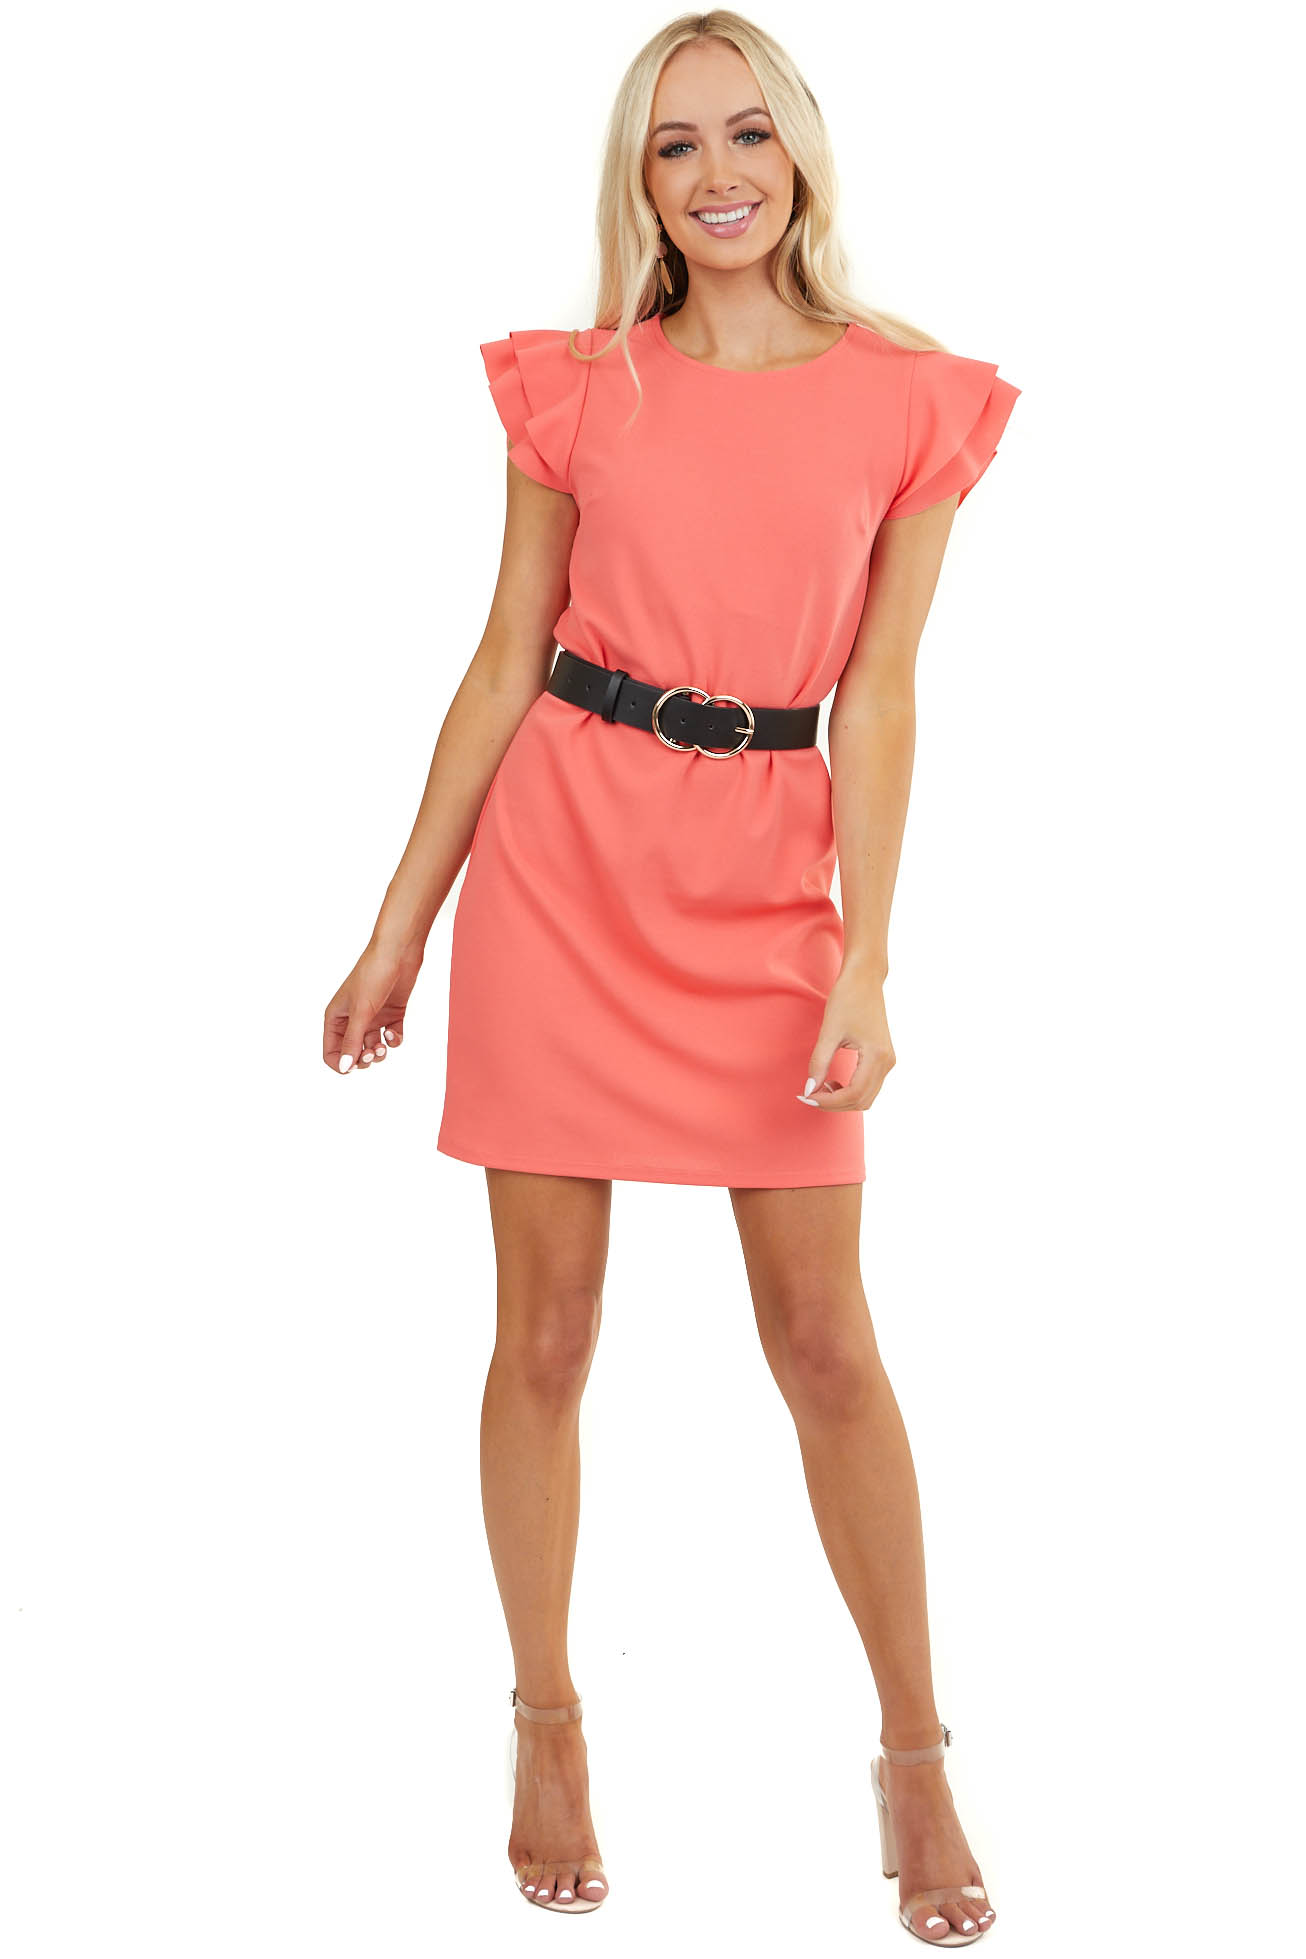 Coral Knit Short Dress with Layered Ruffle Cap Sleeves